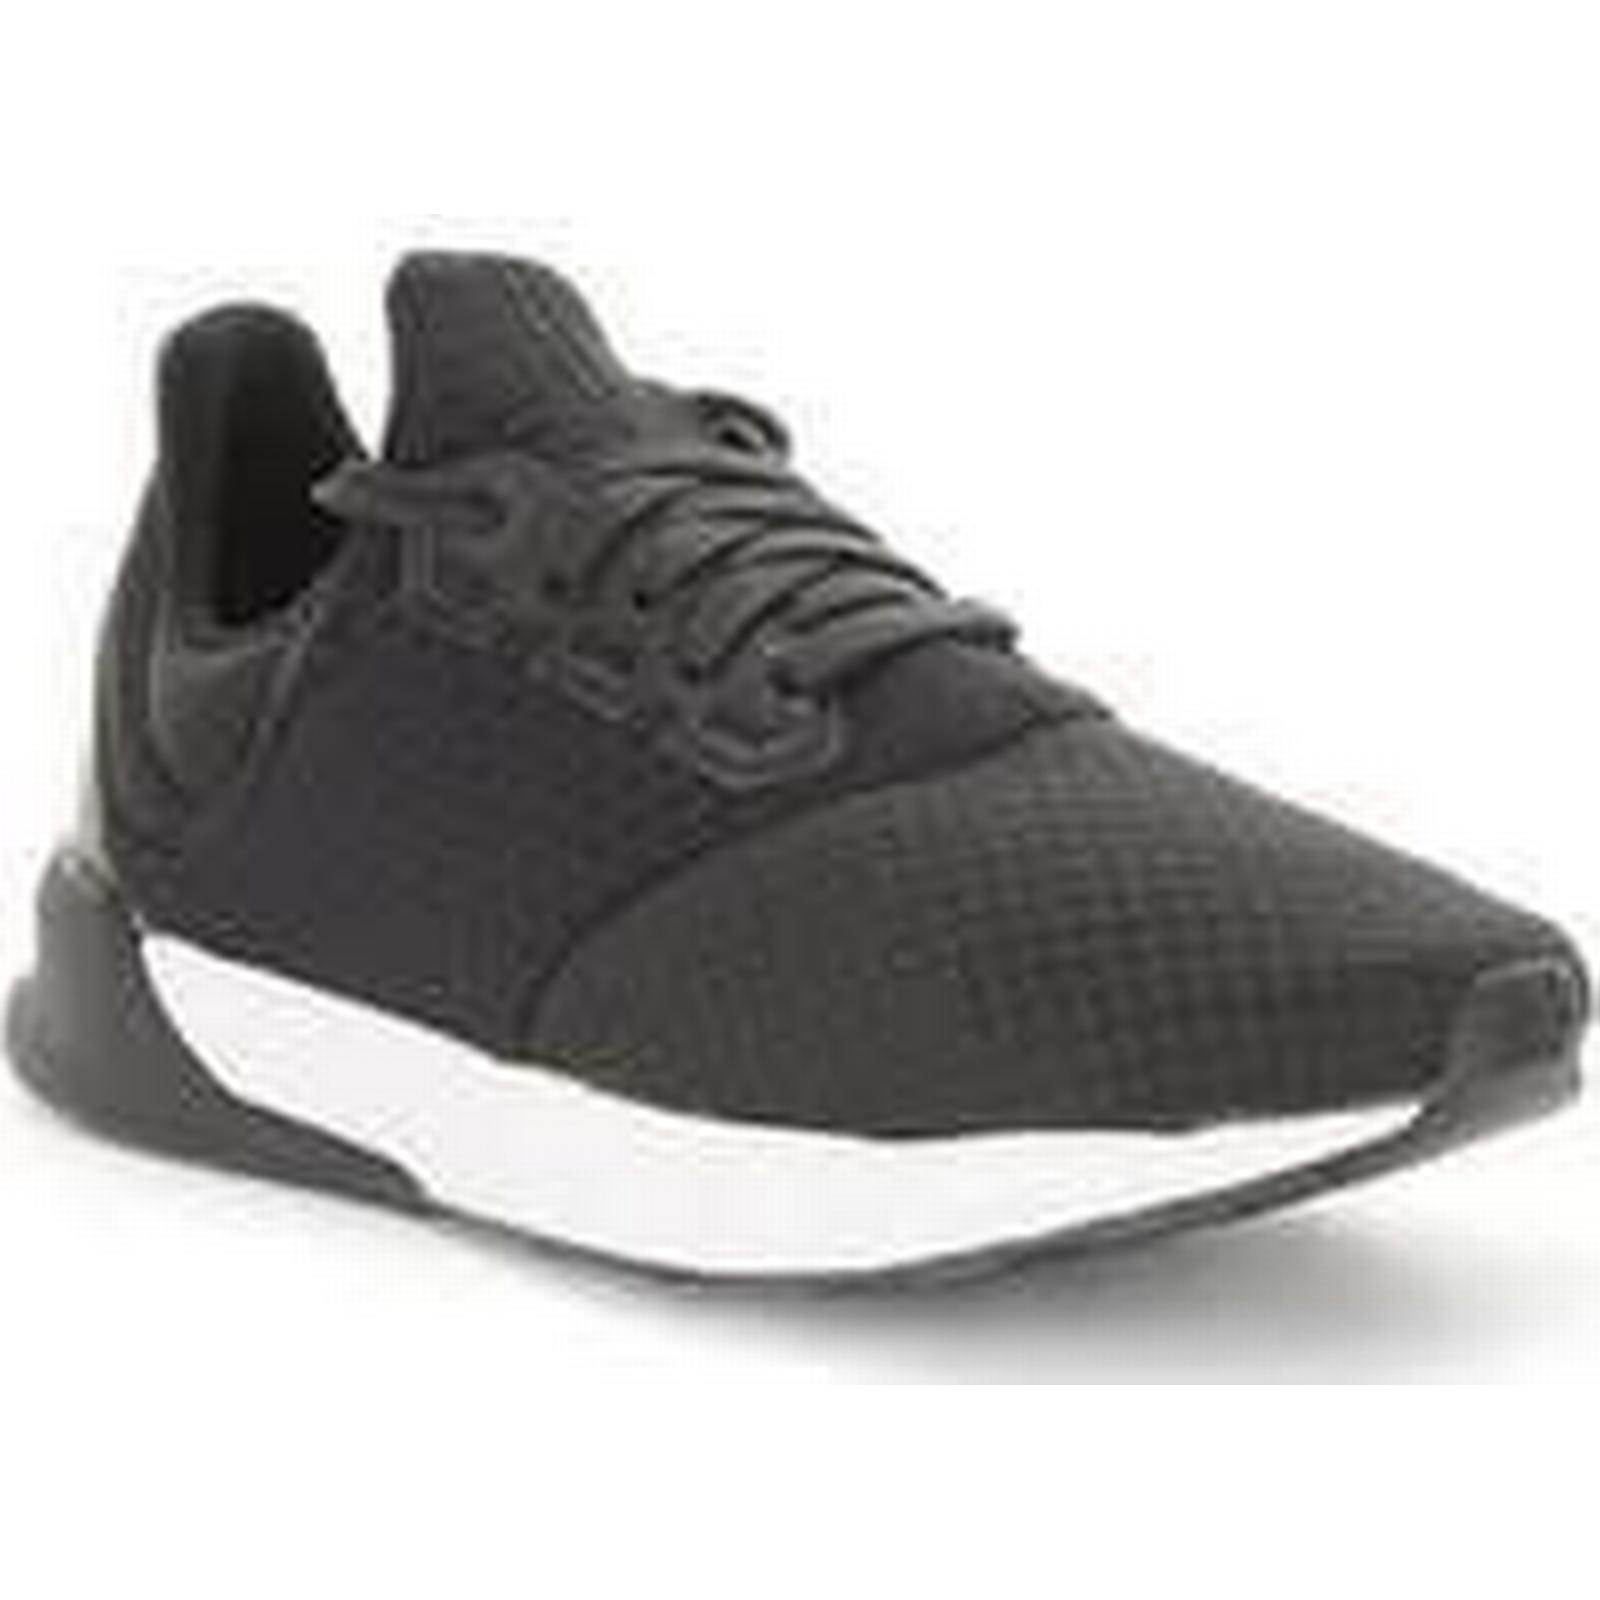 uk ; Chaussure co Adidas Elite S W Falcon Femmes Spartoo amp; 5SYwHqT